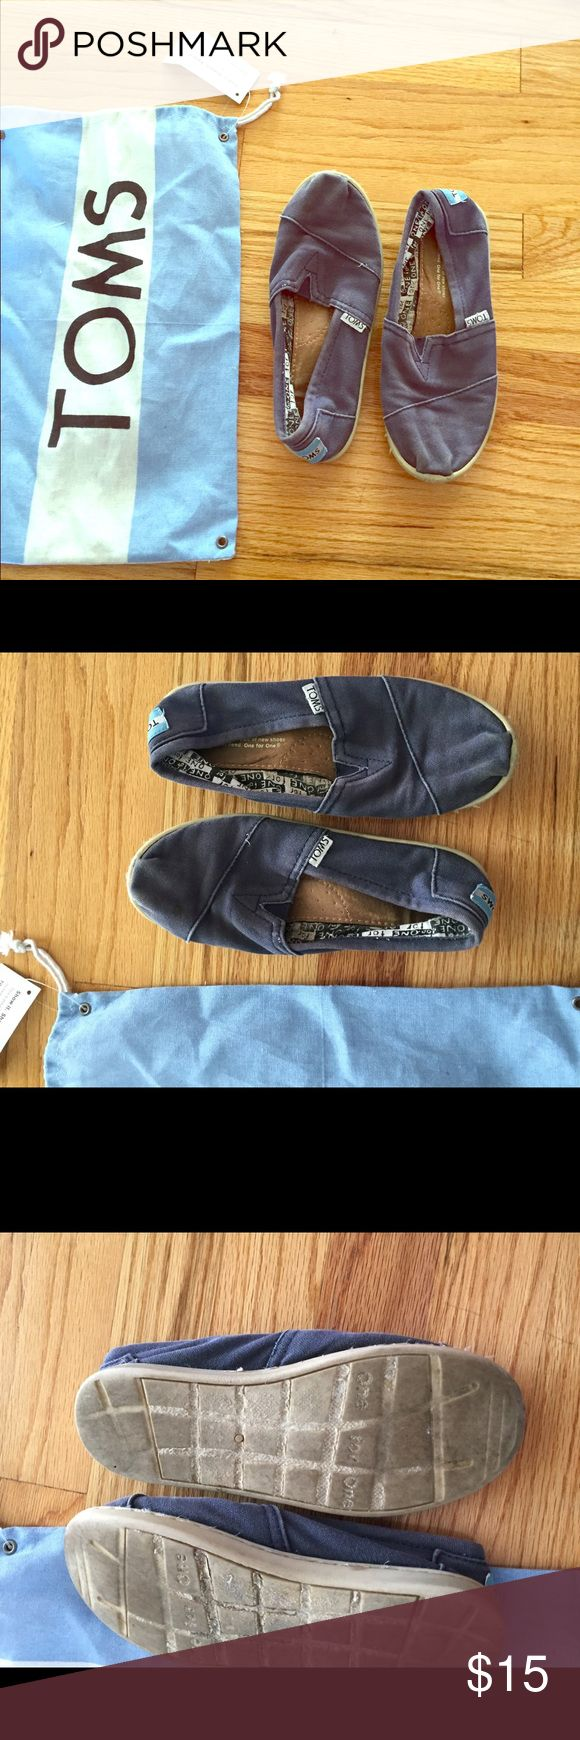 TOMS kids youth size 2.5 blue one for one unisex Kids toms . Used. See pics. Comes with bag. Size 2.5 youth blue TOMS Shoes Moccasins